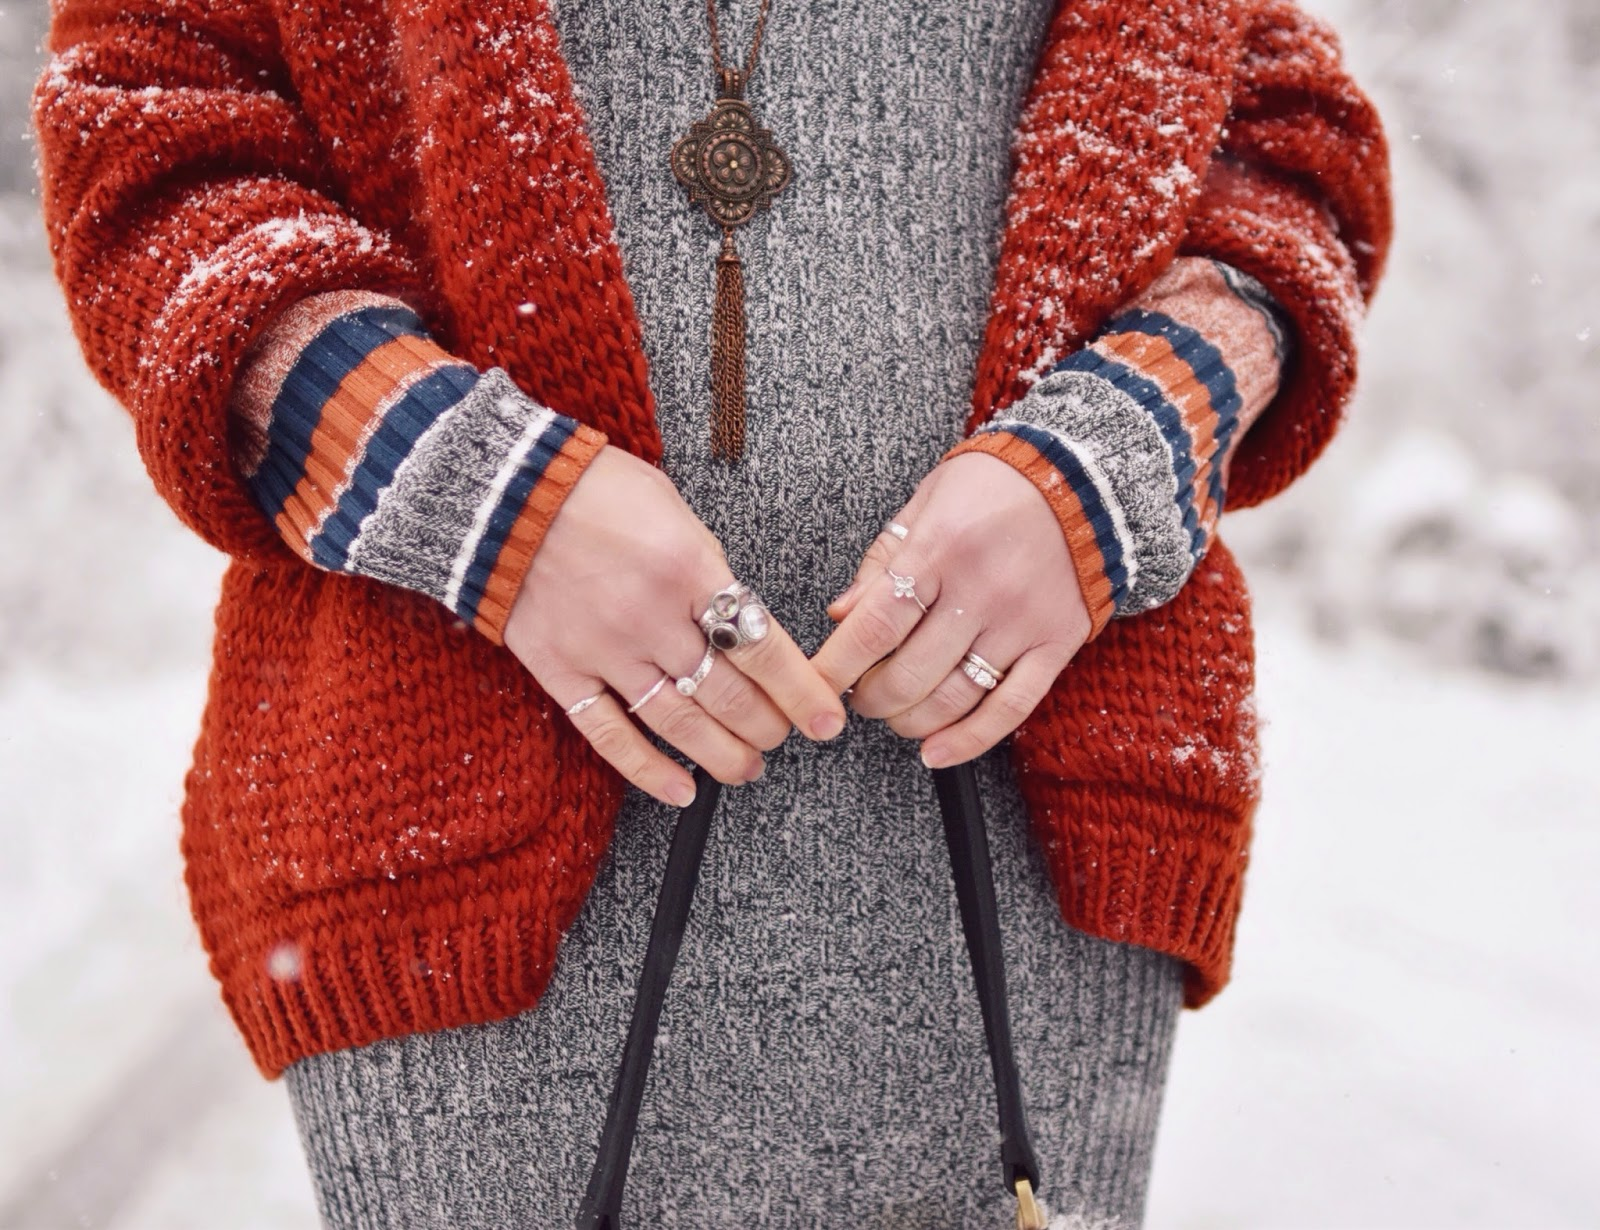 Monika Faulkner outfit inspiration - striped sweater dress, chunky red cardigan